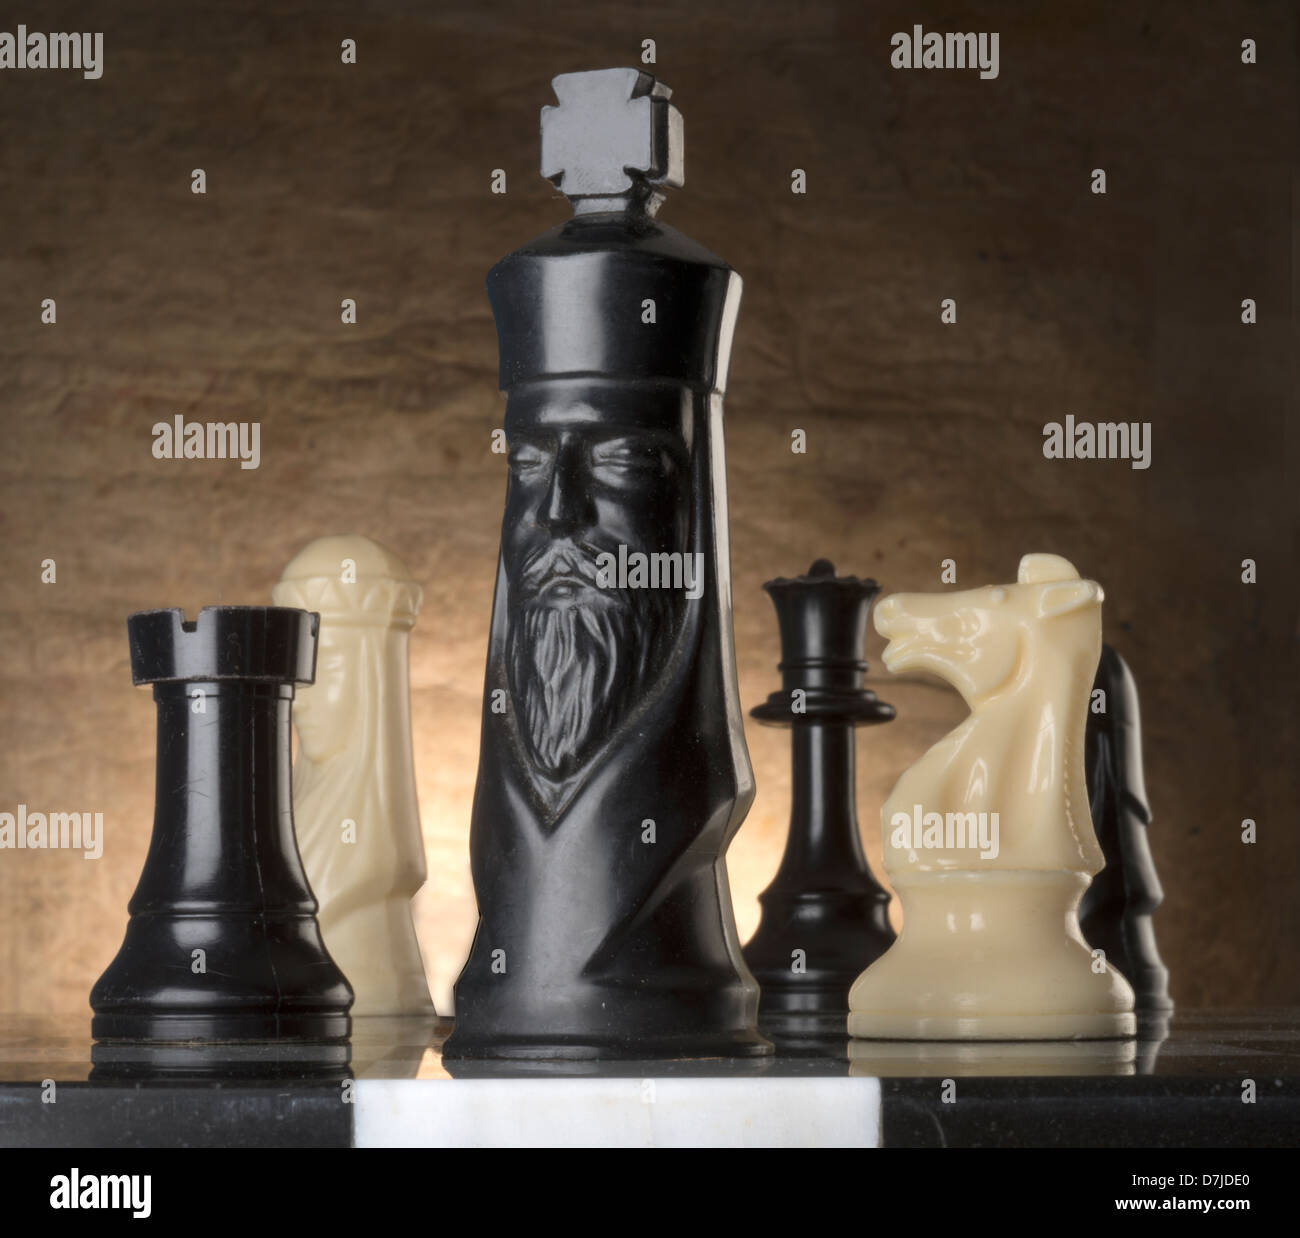 chess pieces on marble playing board - Stock Image